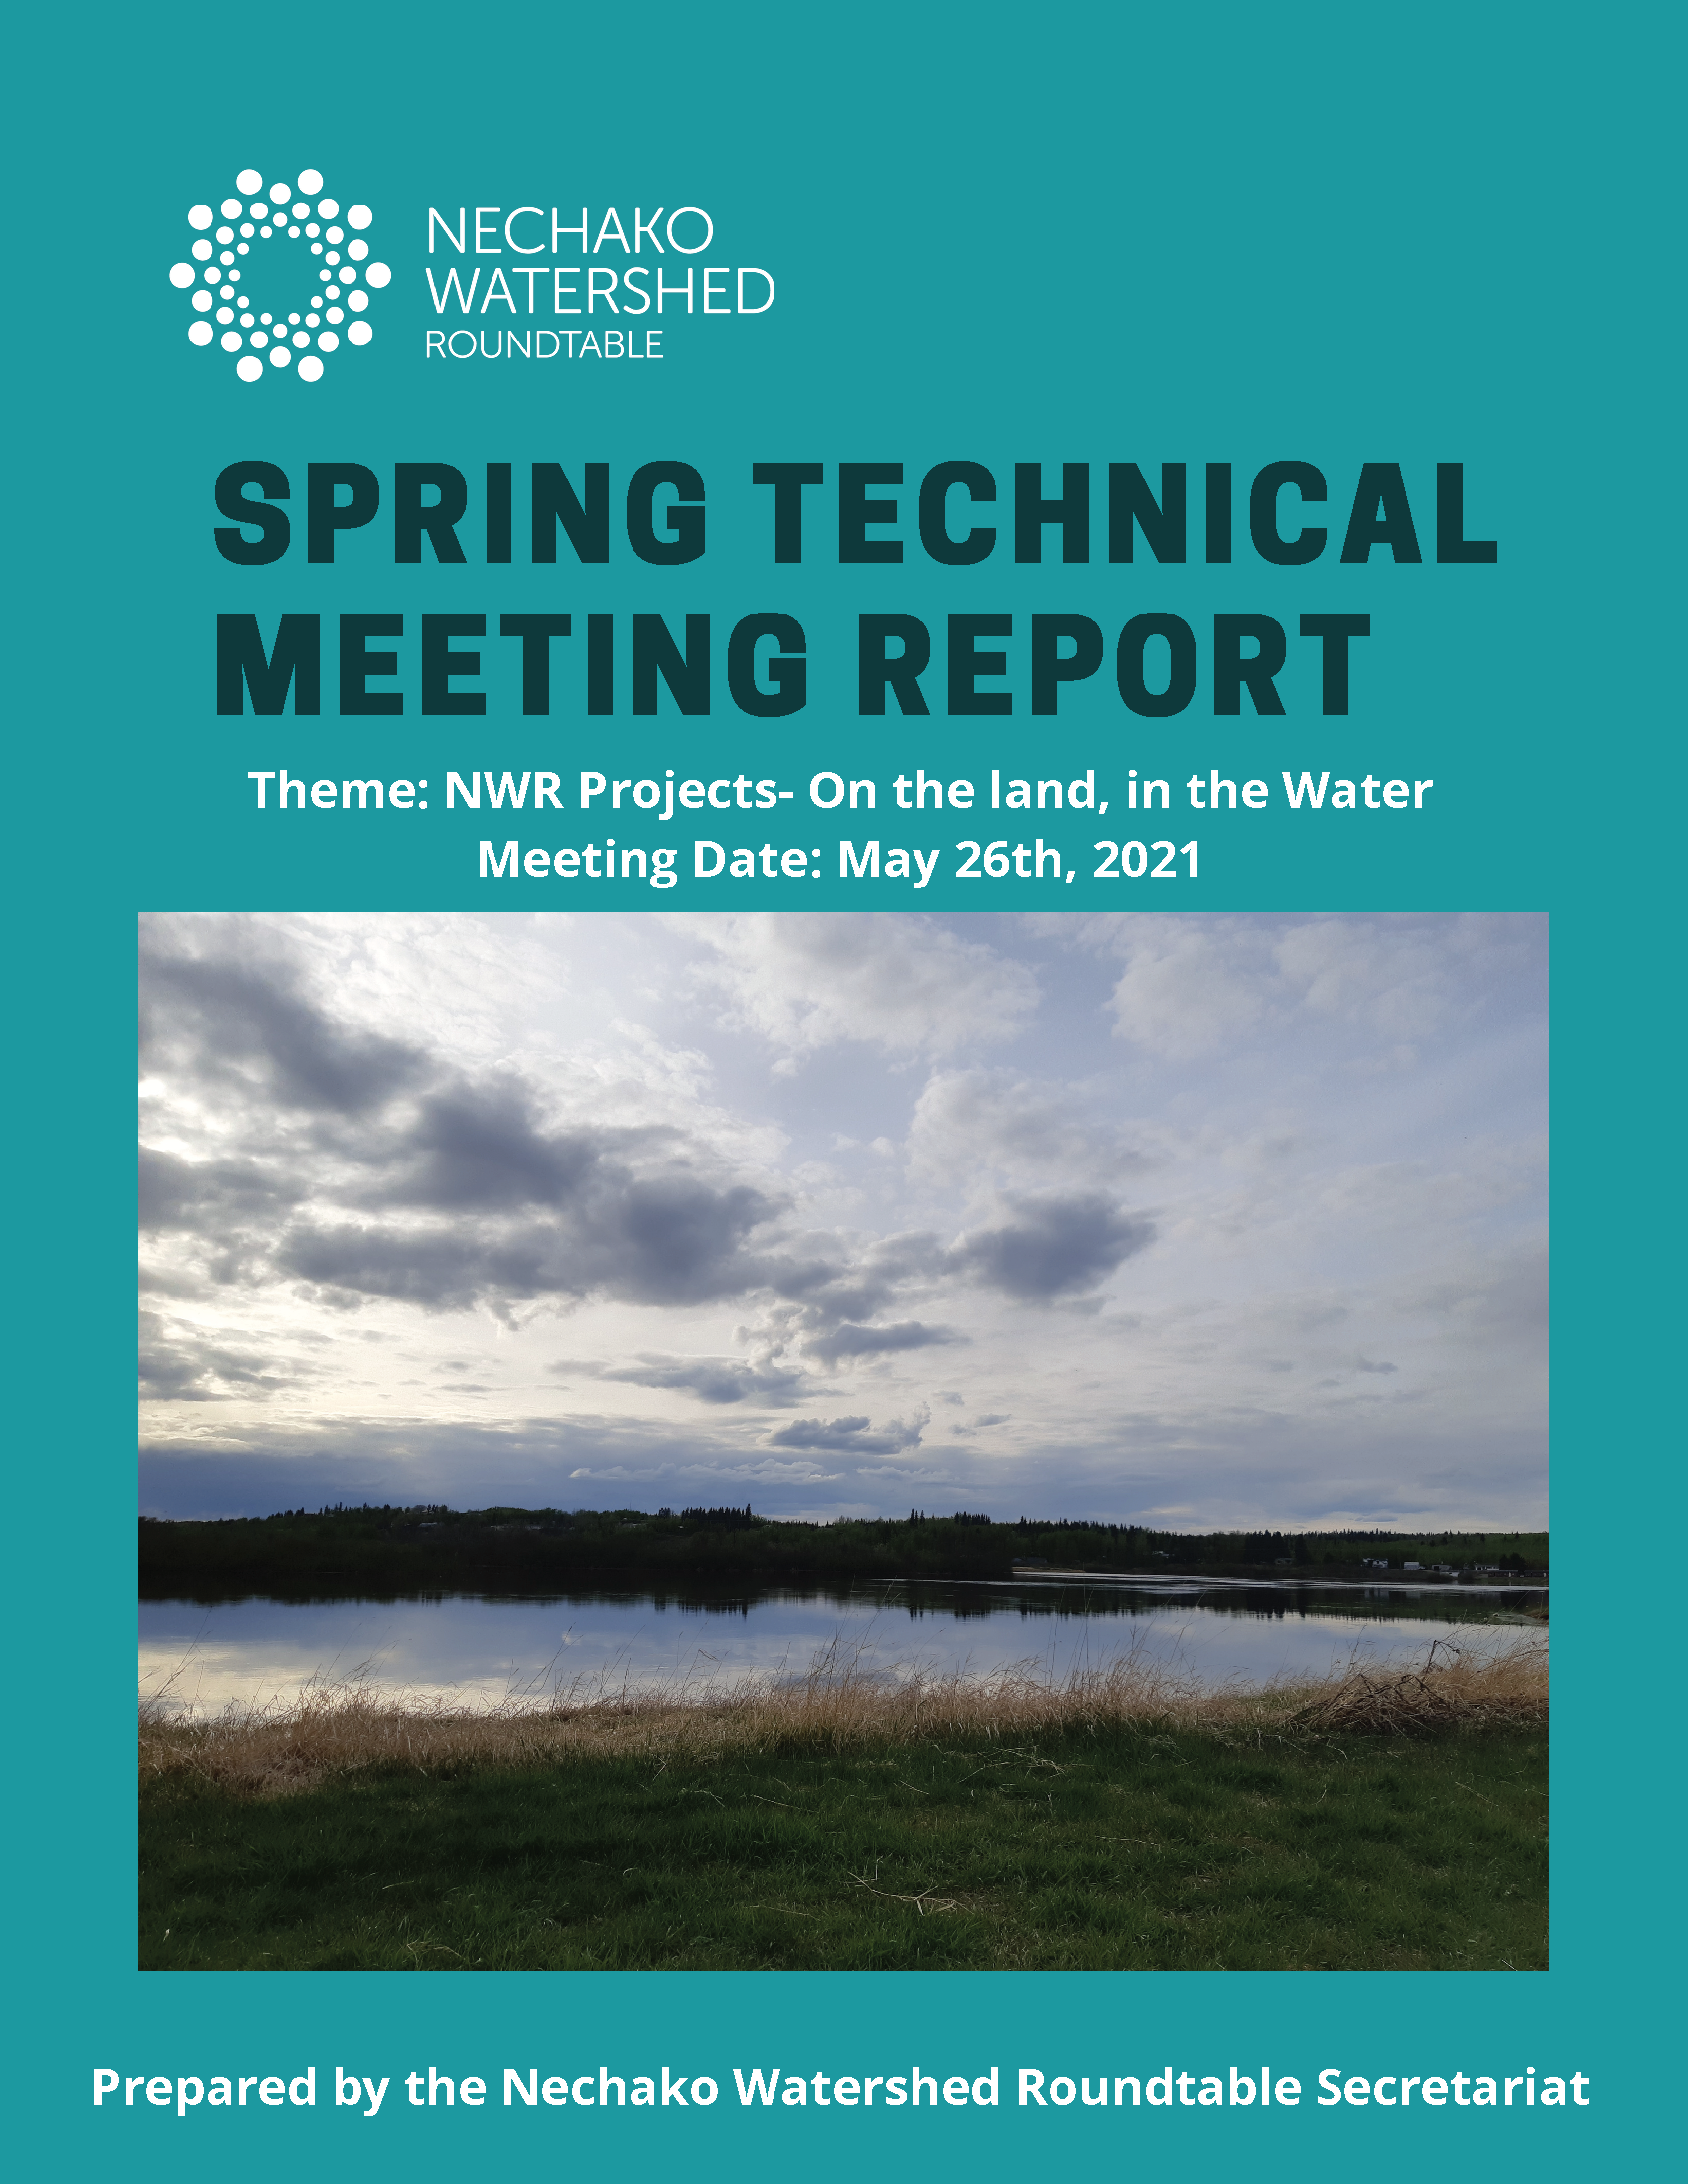 Check our our Spring Technical Meeting Report!